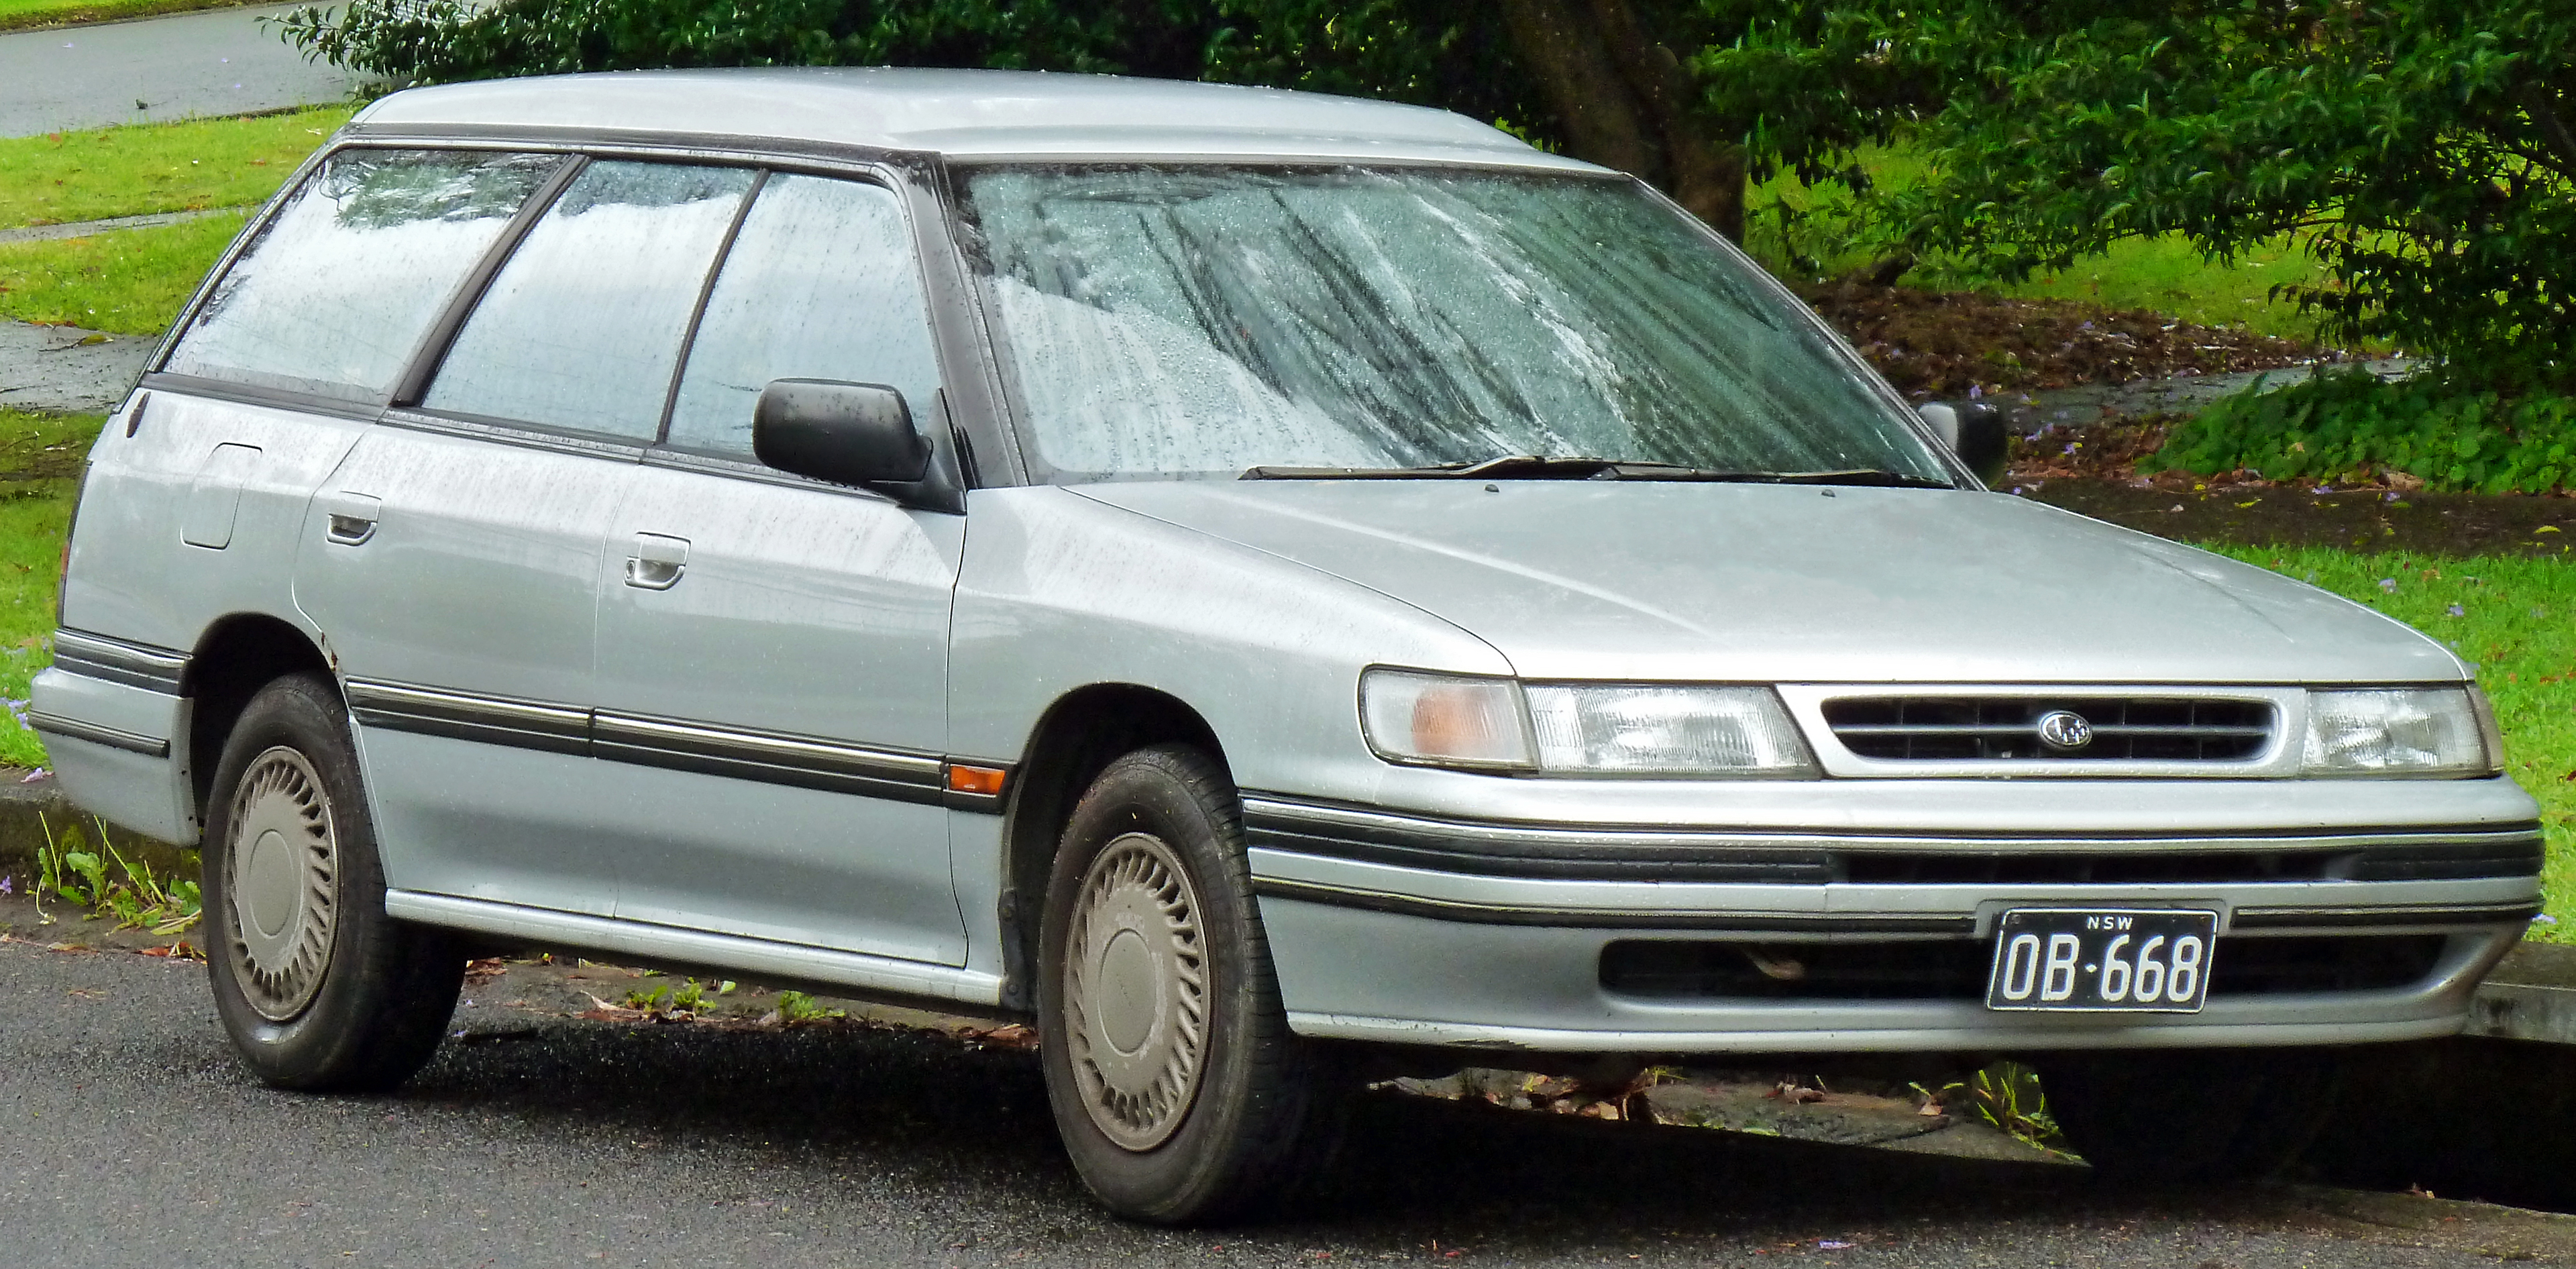 1999 Mitsubishi Galant Viii Station Wagon A4 Pictures Wiring Diagram Images 12